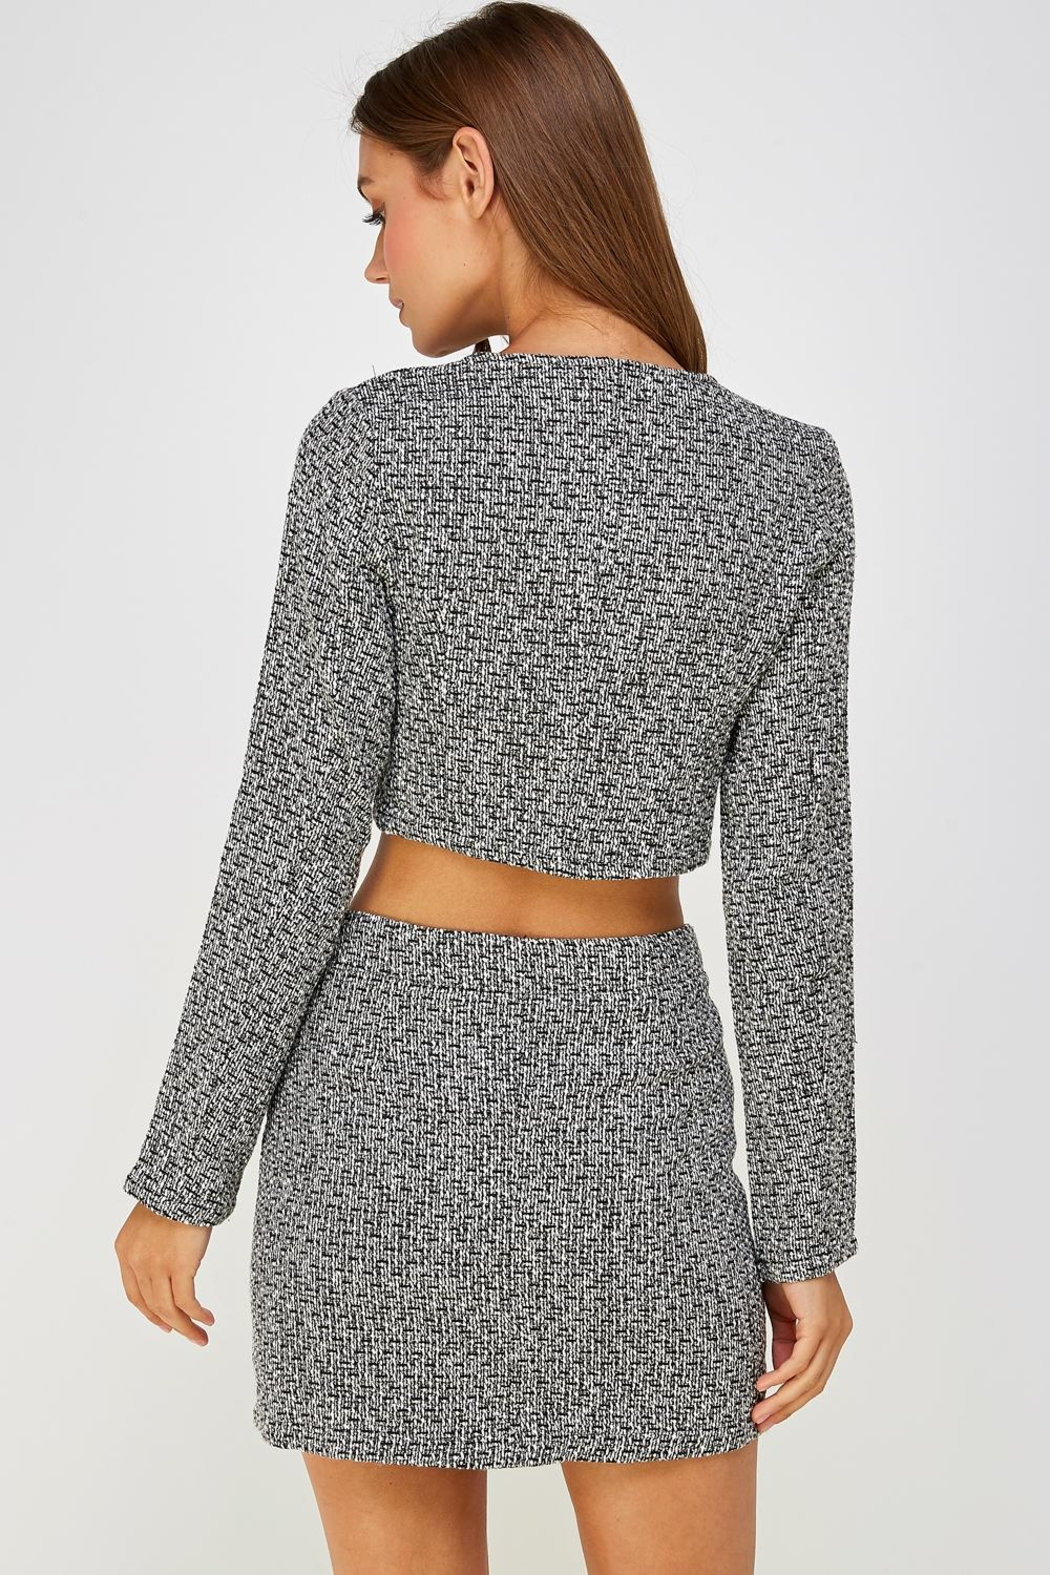 Wild Honey Tweed Skirt Set - Back Cropped Image